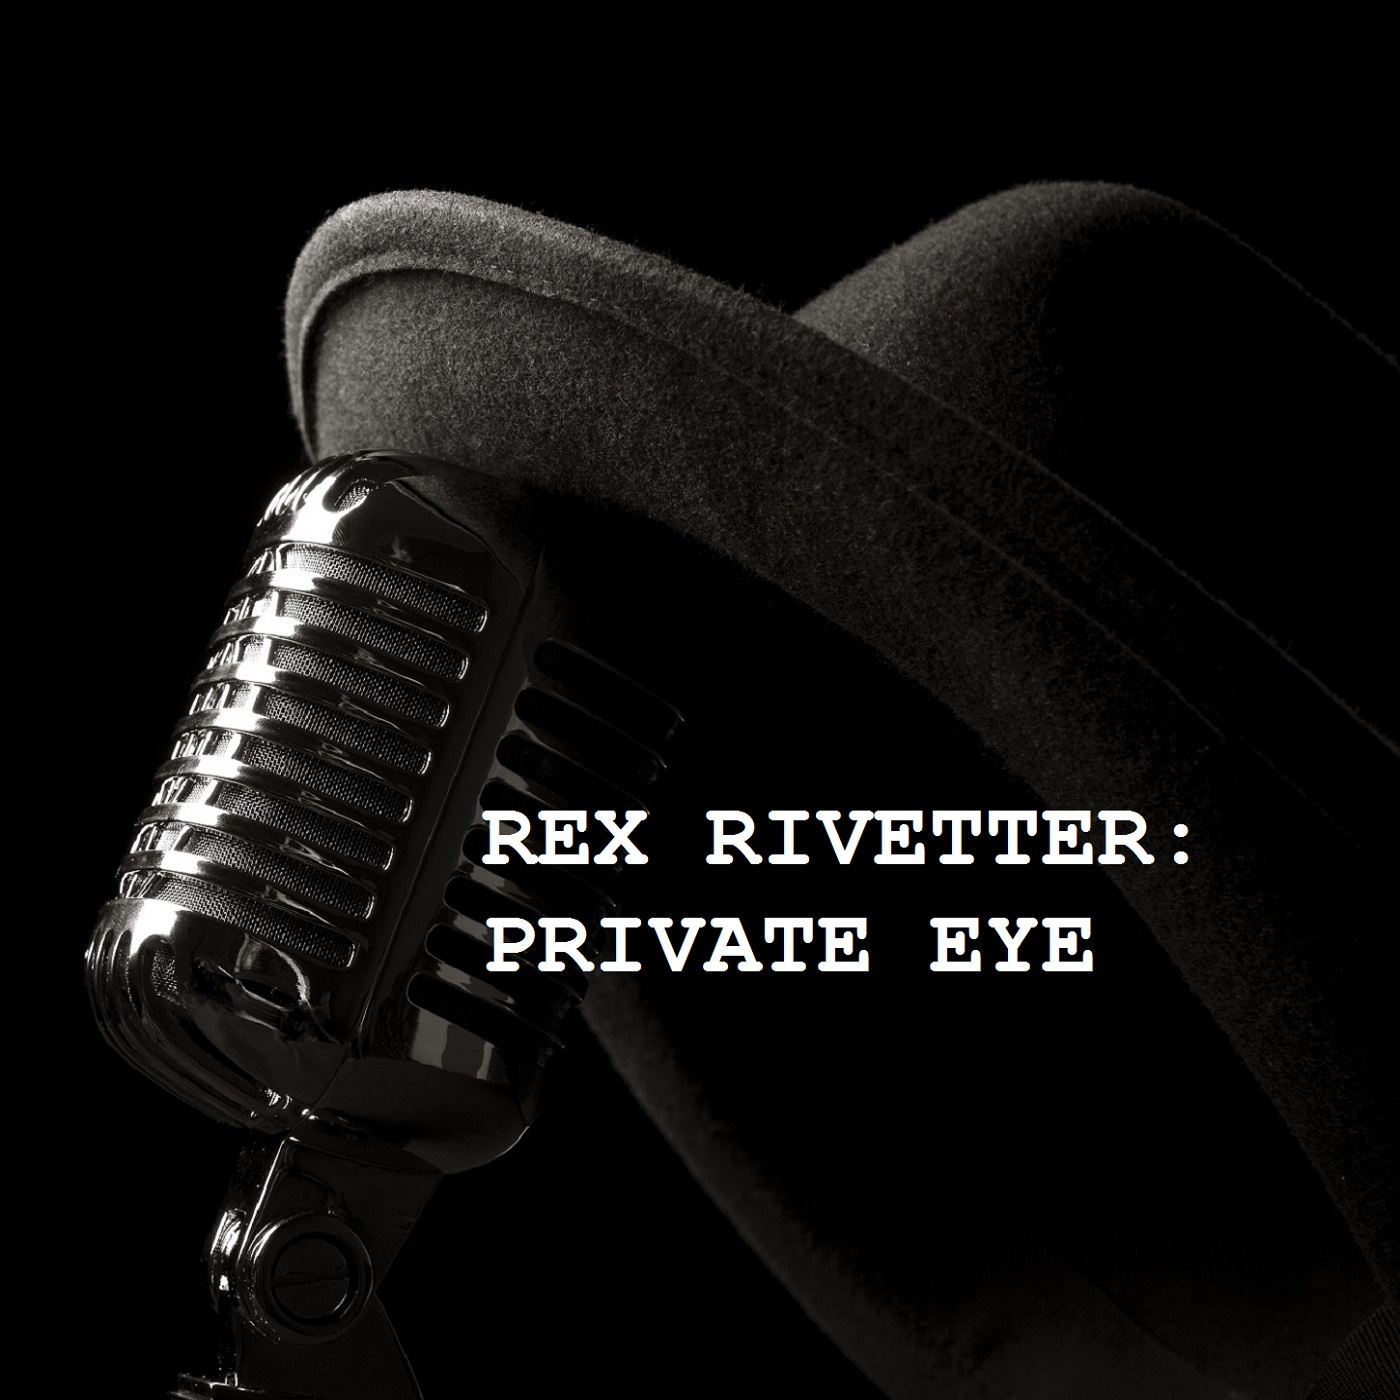 Artie Shaw Theme Song Rex Rivetter Private Eye Listen Via Stitcher For Podcasts